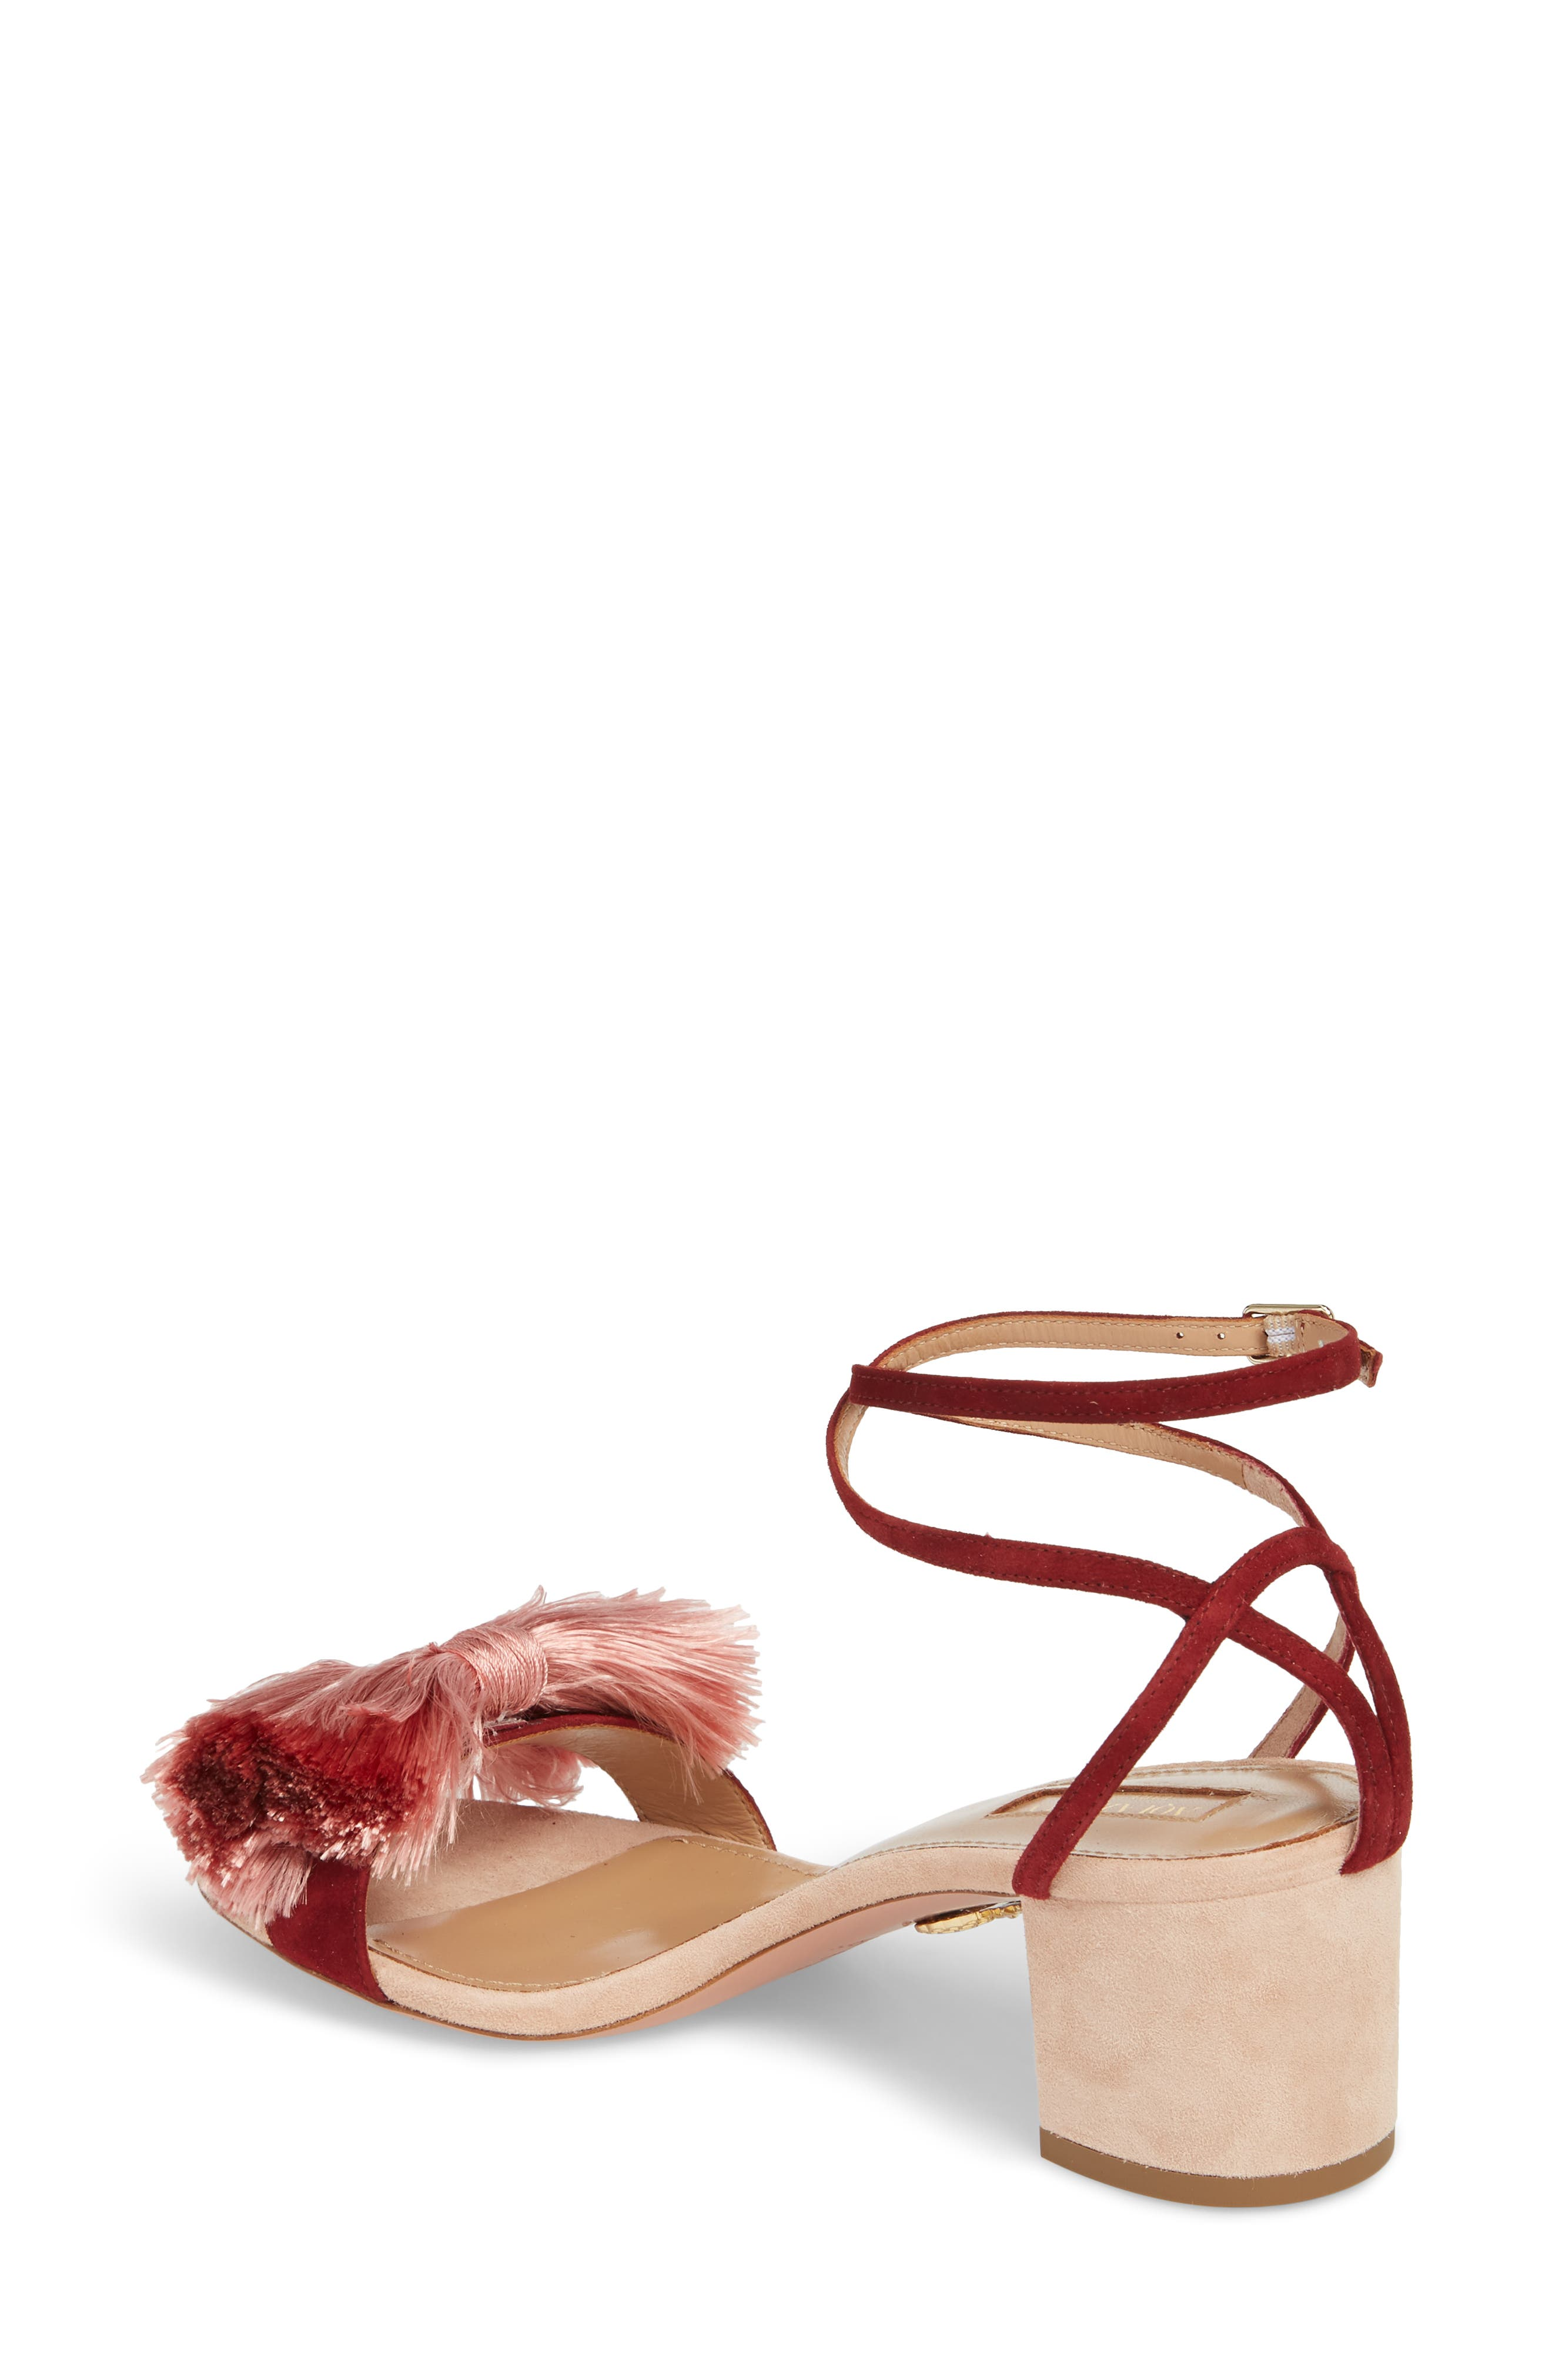 Lotus Blossom Sandal,                             Alternate thumbnail 2, color,                             601